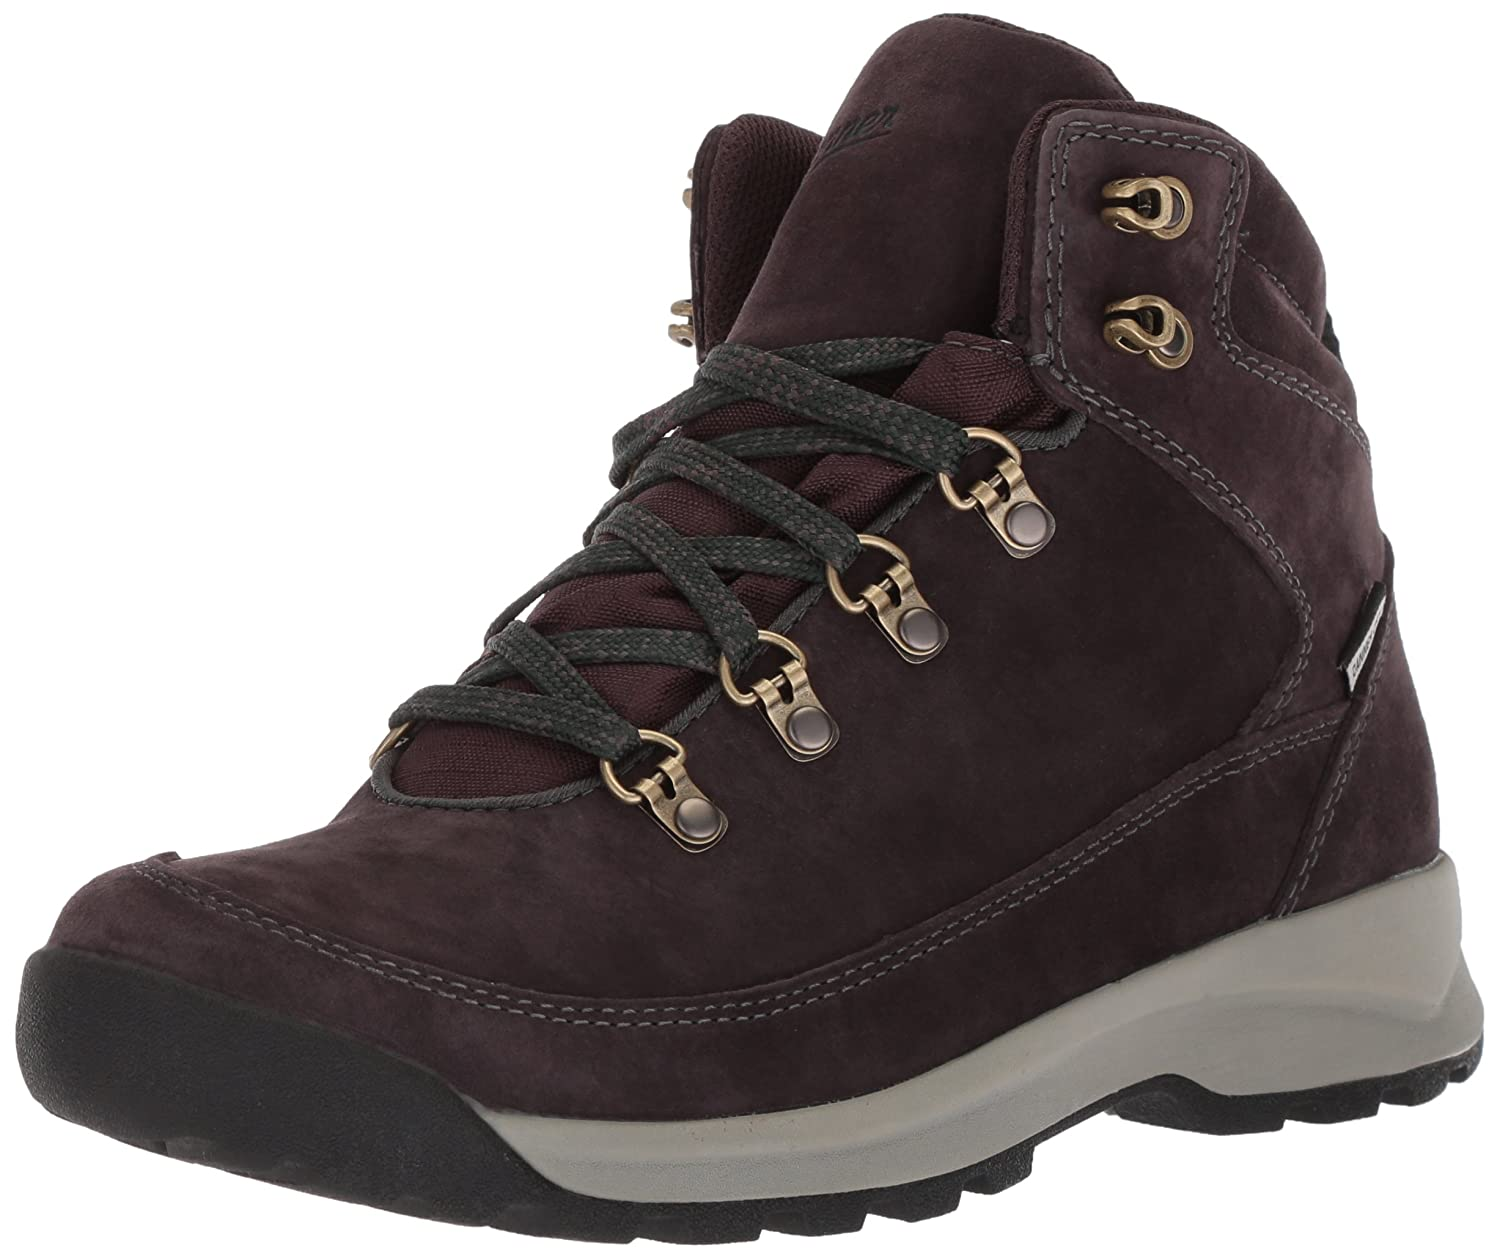 Danner Women's Adrika Hiker Hiking Boot B071JMKV6D 6.5 B(M) US|Plum